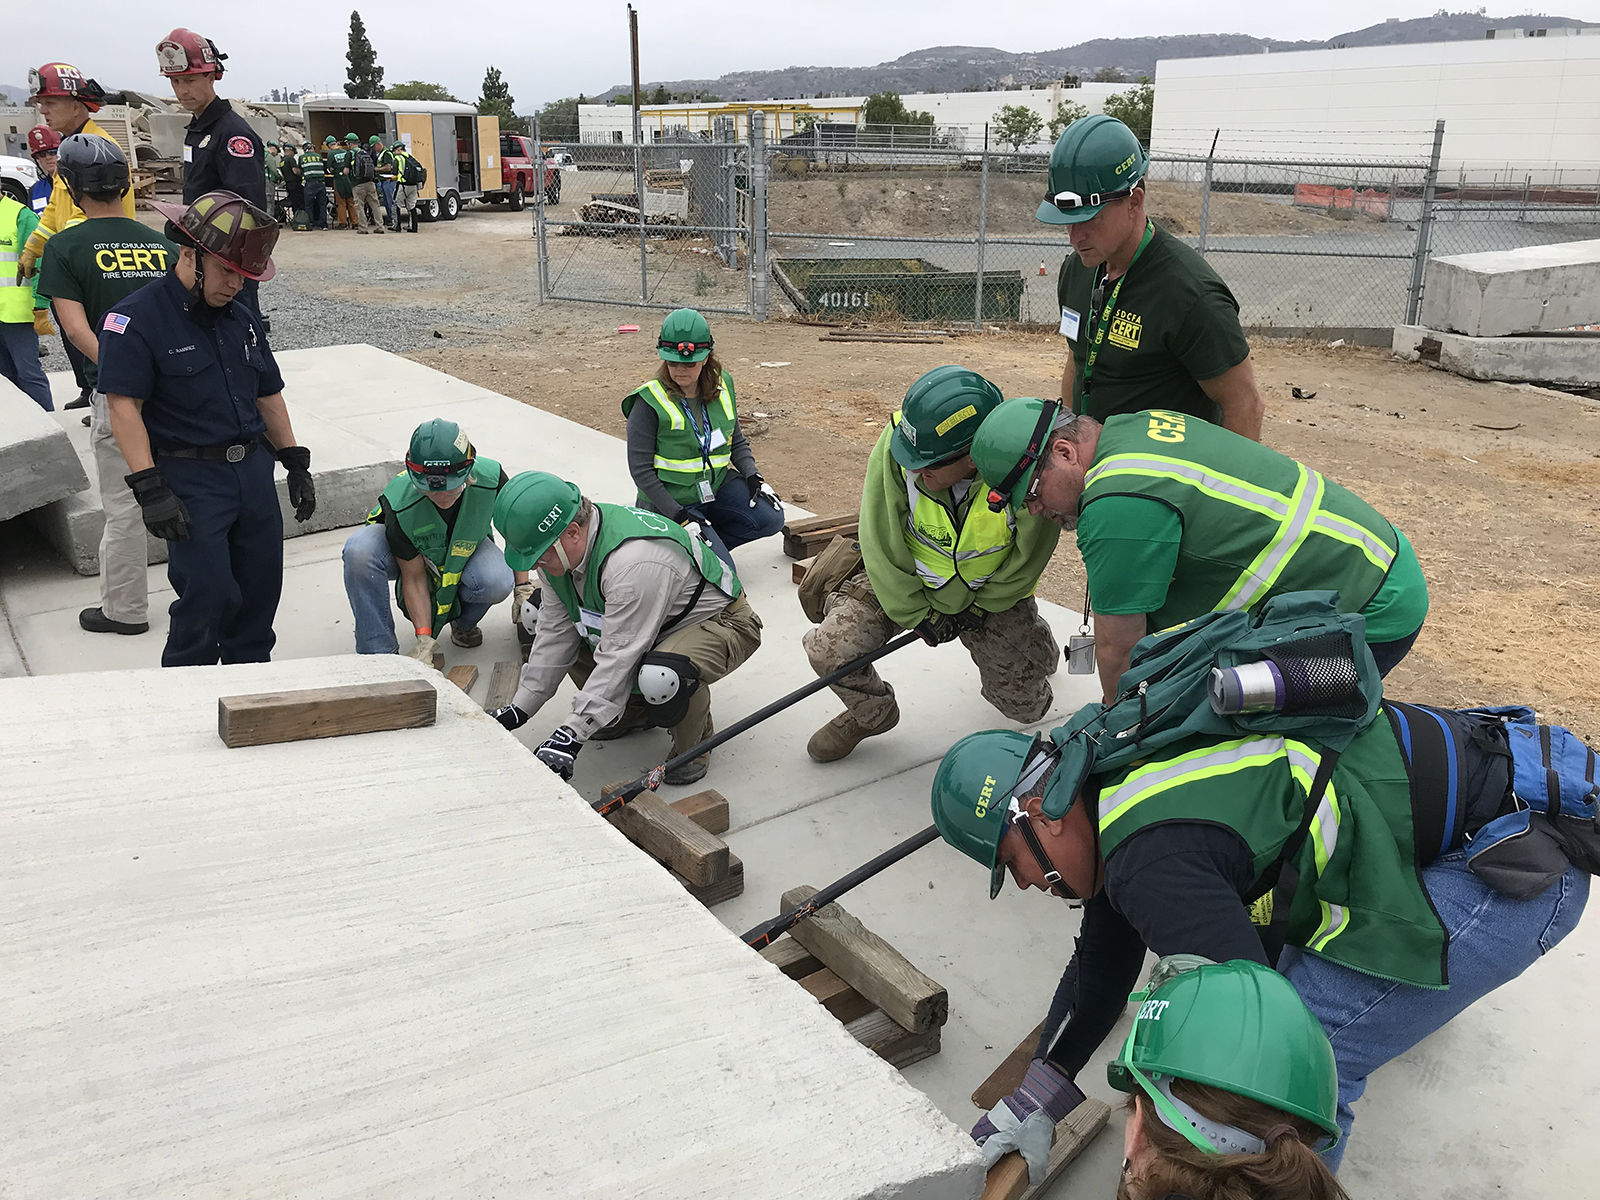 """At a recent Countywide CERT training, members from various communities work together to lift a heavy concrete slab to rescue a """"dummy"""" who is trapped just out of sight."""